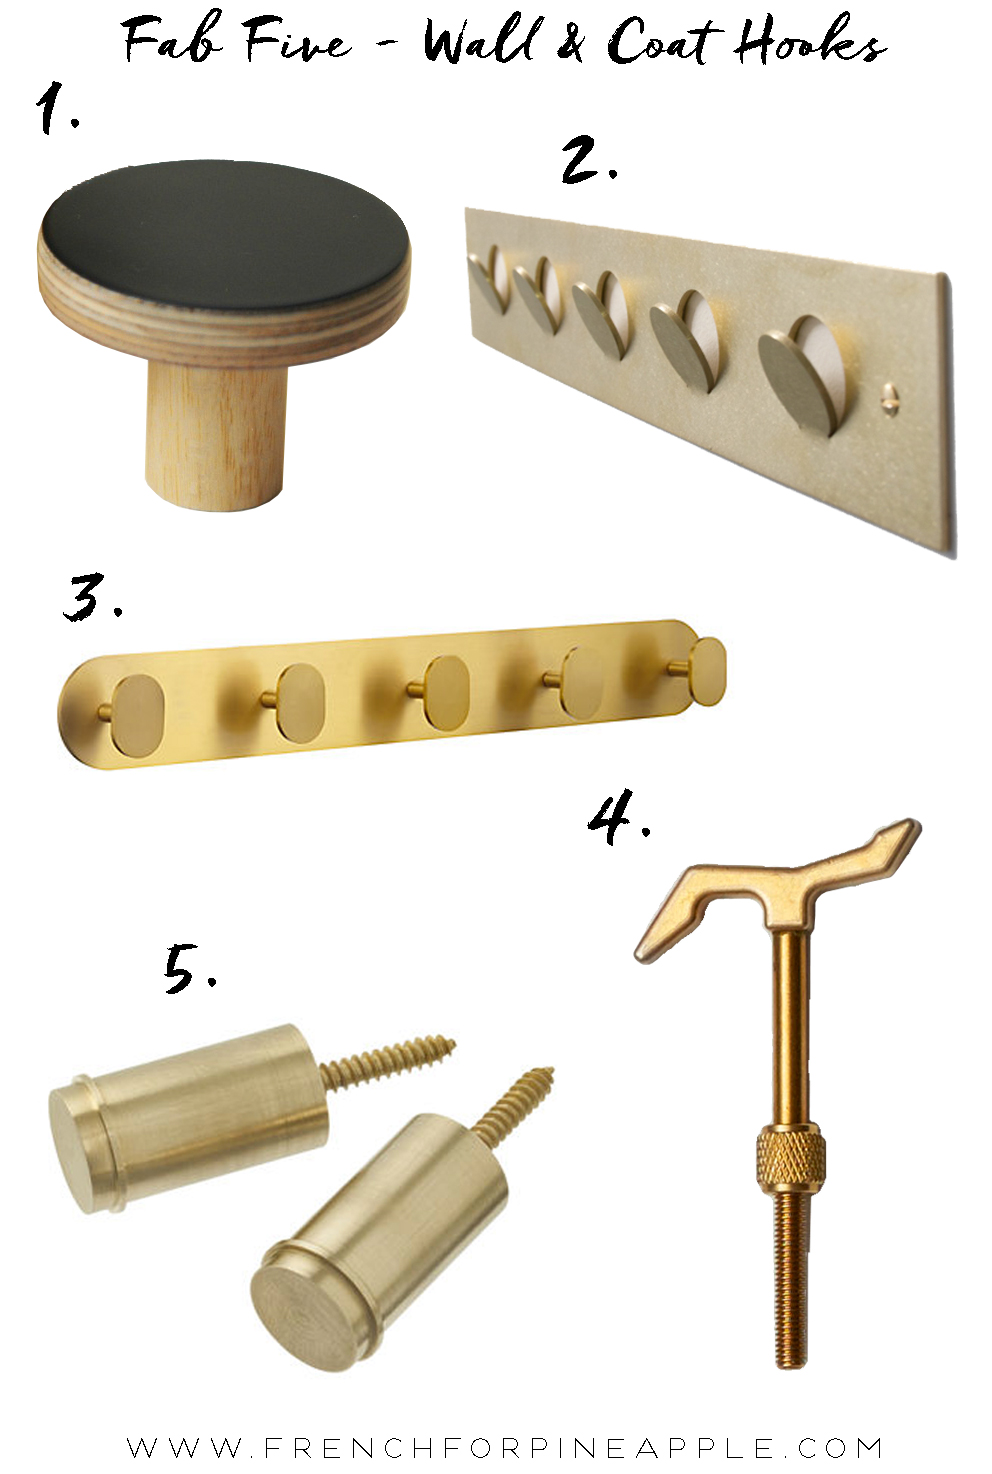 Fab Five Wall And Coat Hooks - French For Pineapple Blog